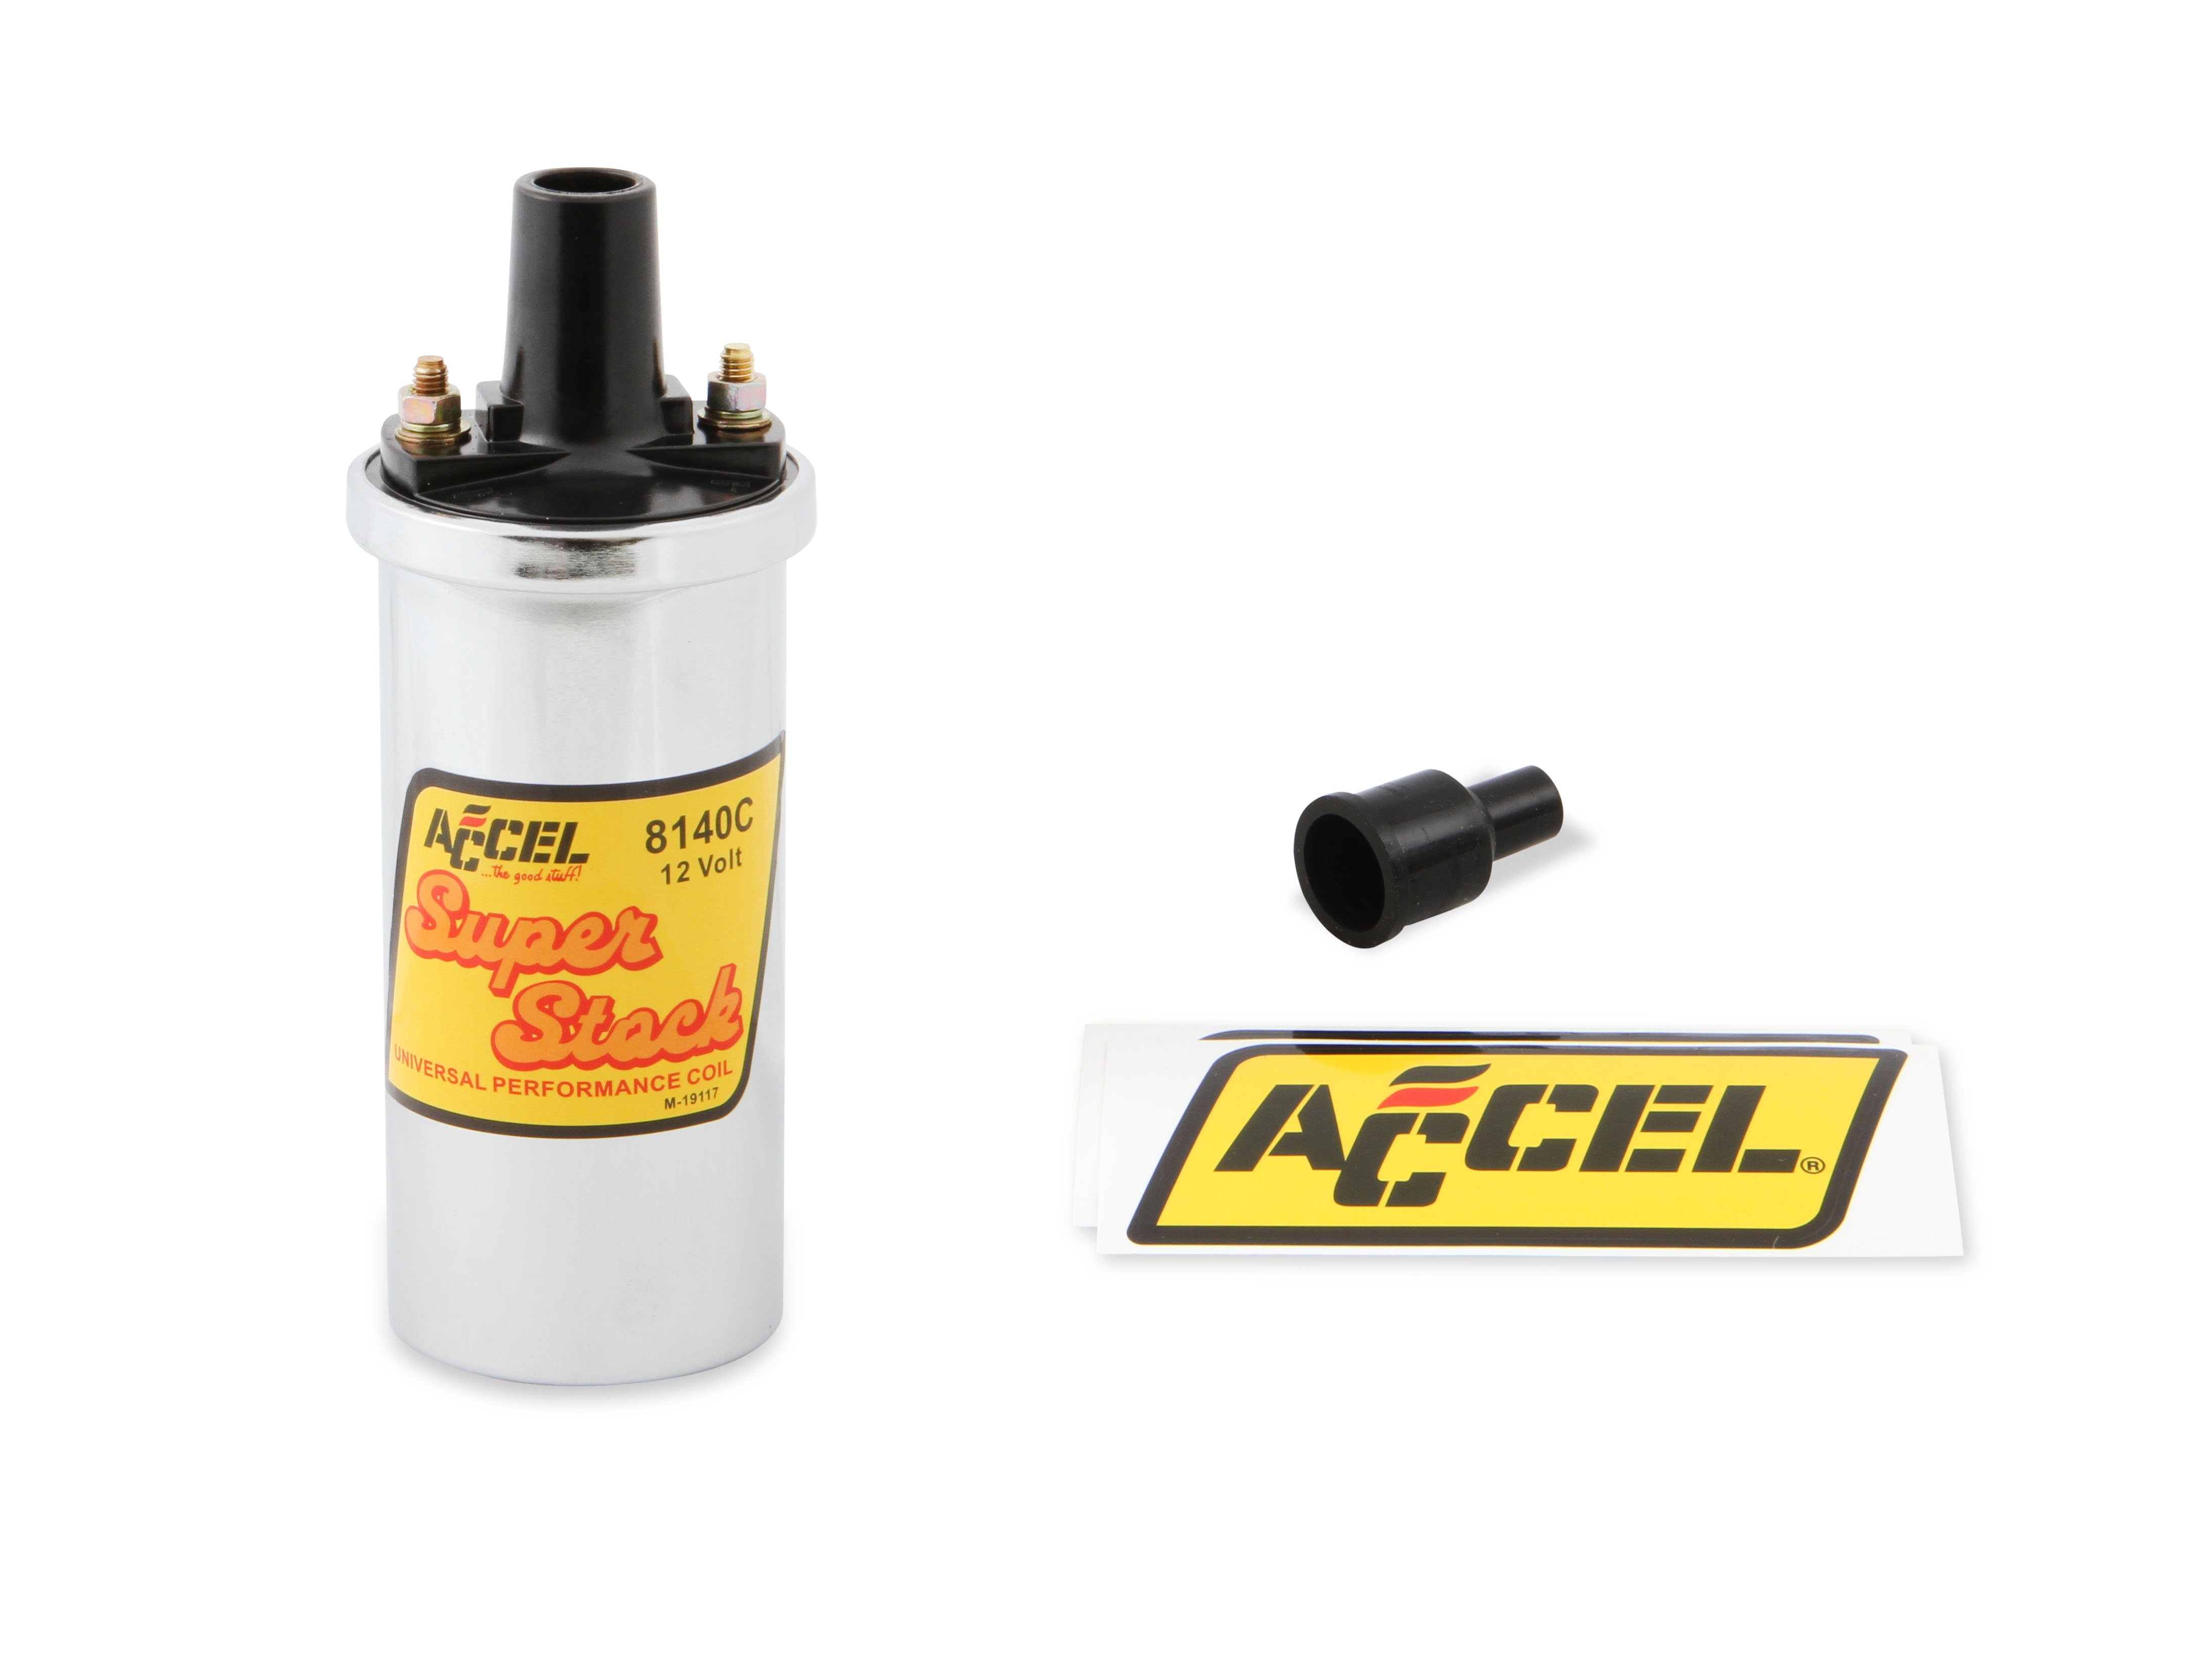 ACCEL 8140C ACCEL Ignition Coil - Chrome - 42000v 1.4 ohm primary - Points  - good up to 6500 RPMHolley